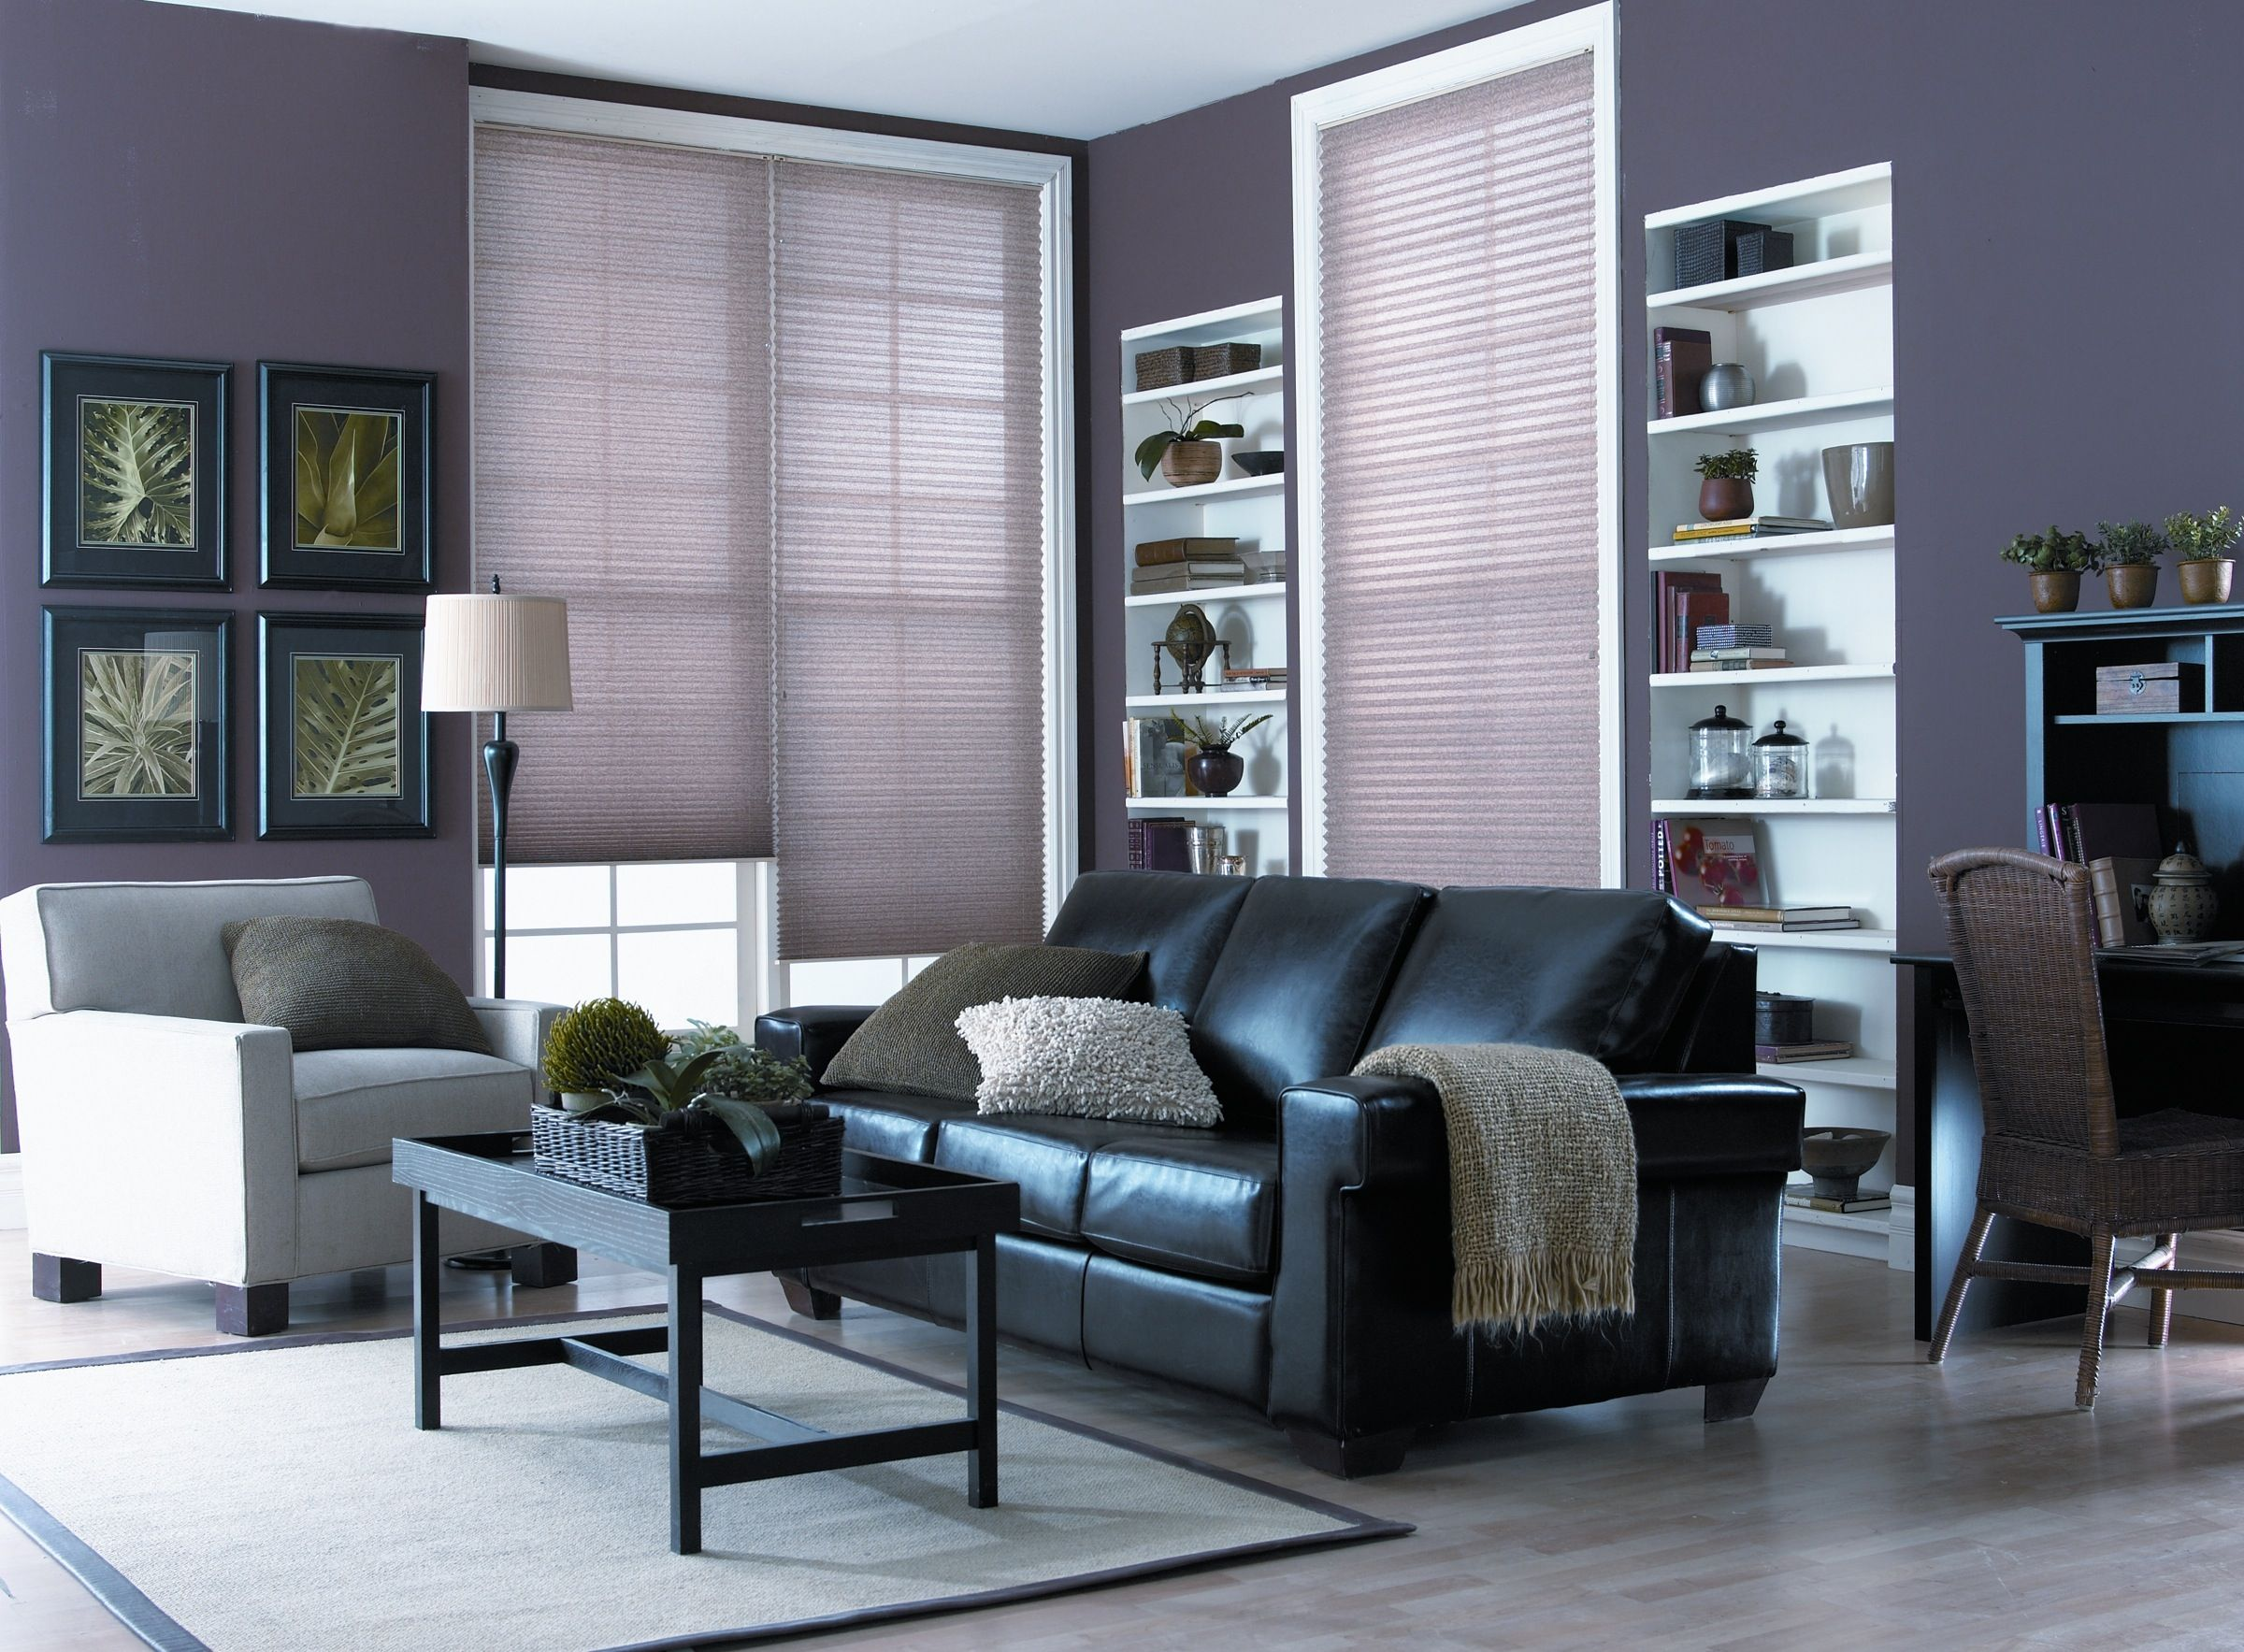 Pin On Drapery And Blinds